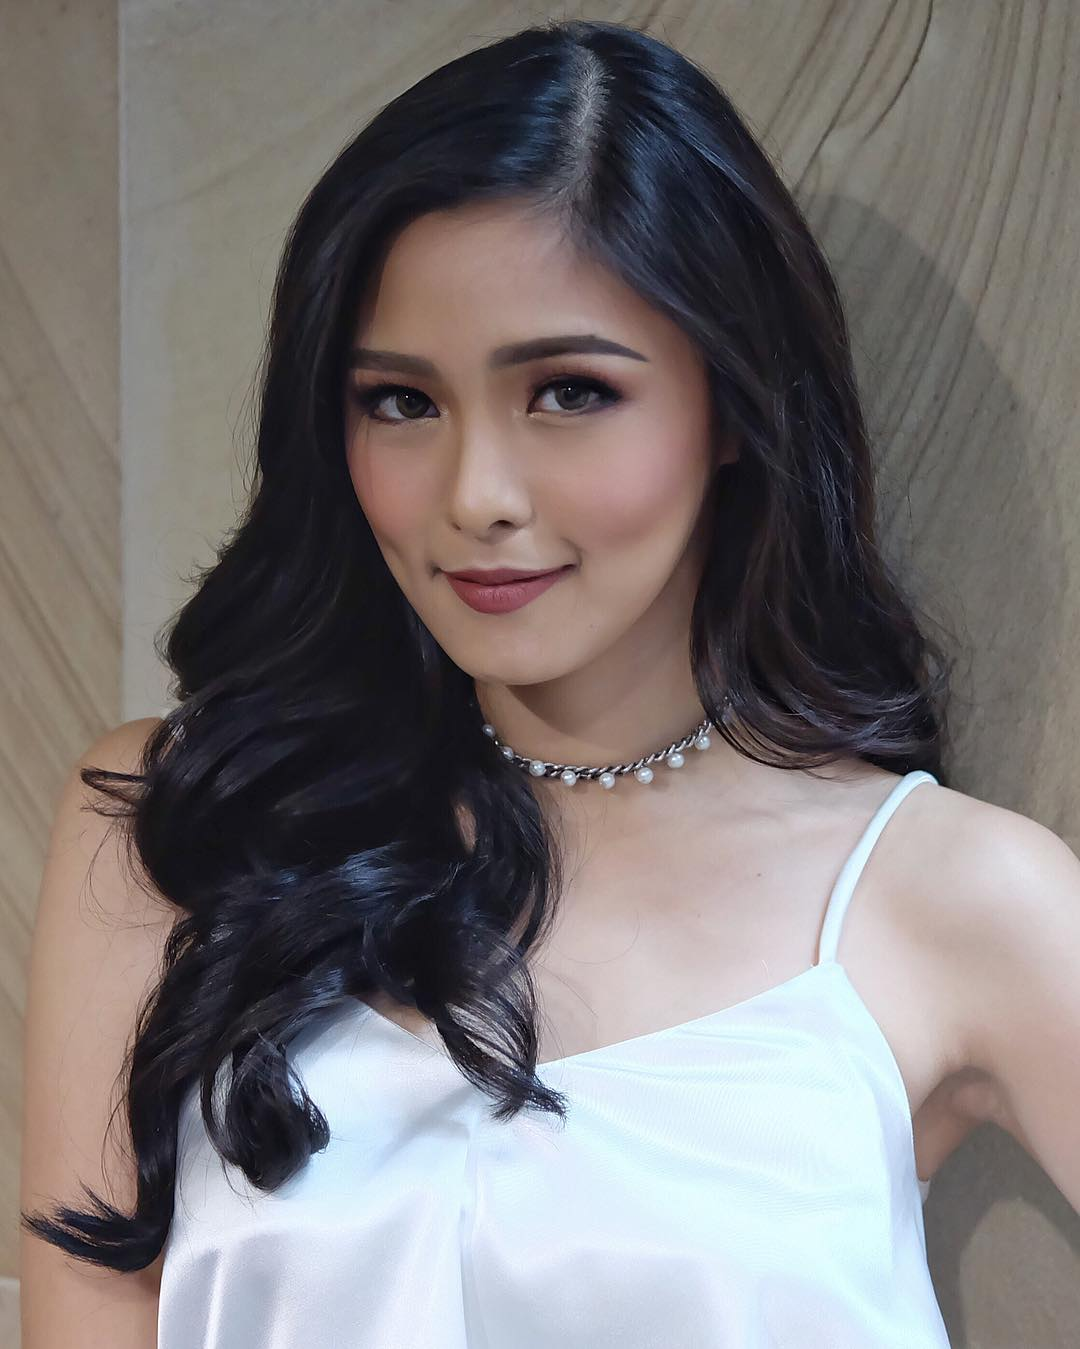 35 Times Kim Chiu Captured The Online World With Her Chinita Charm